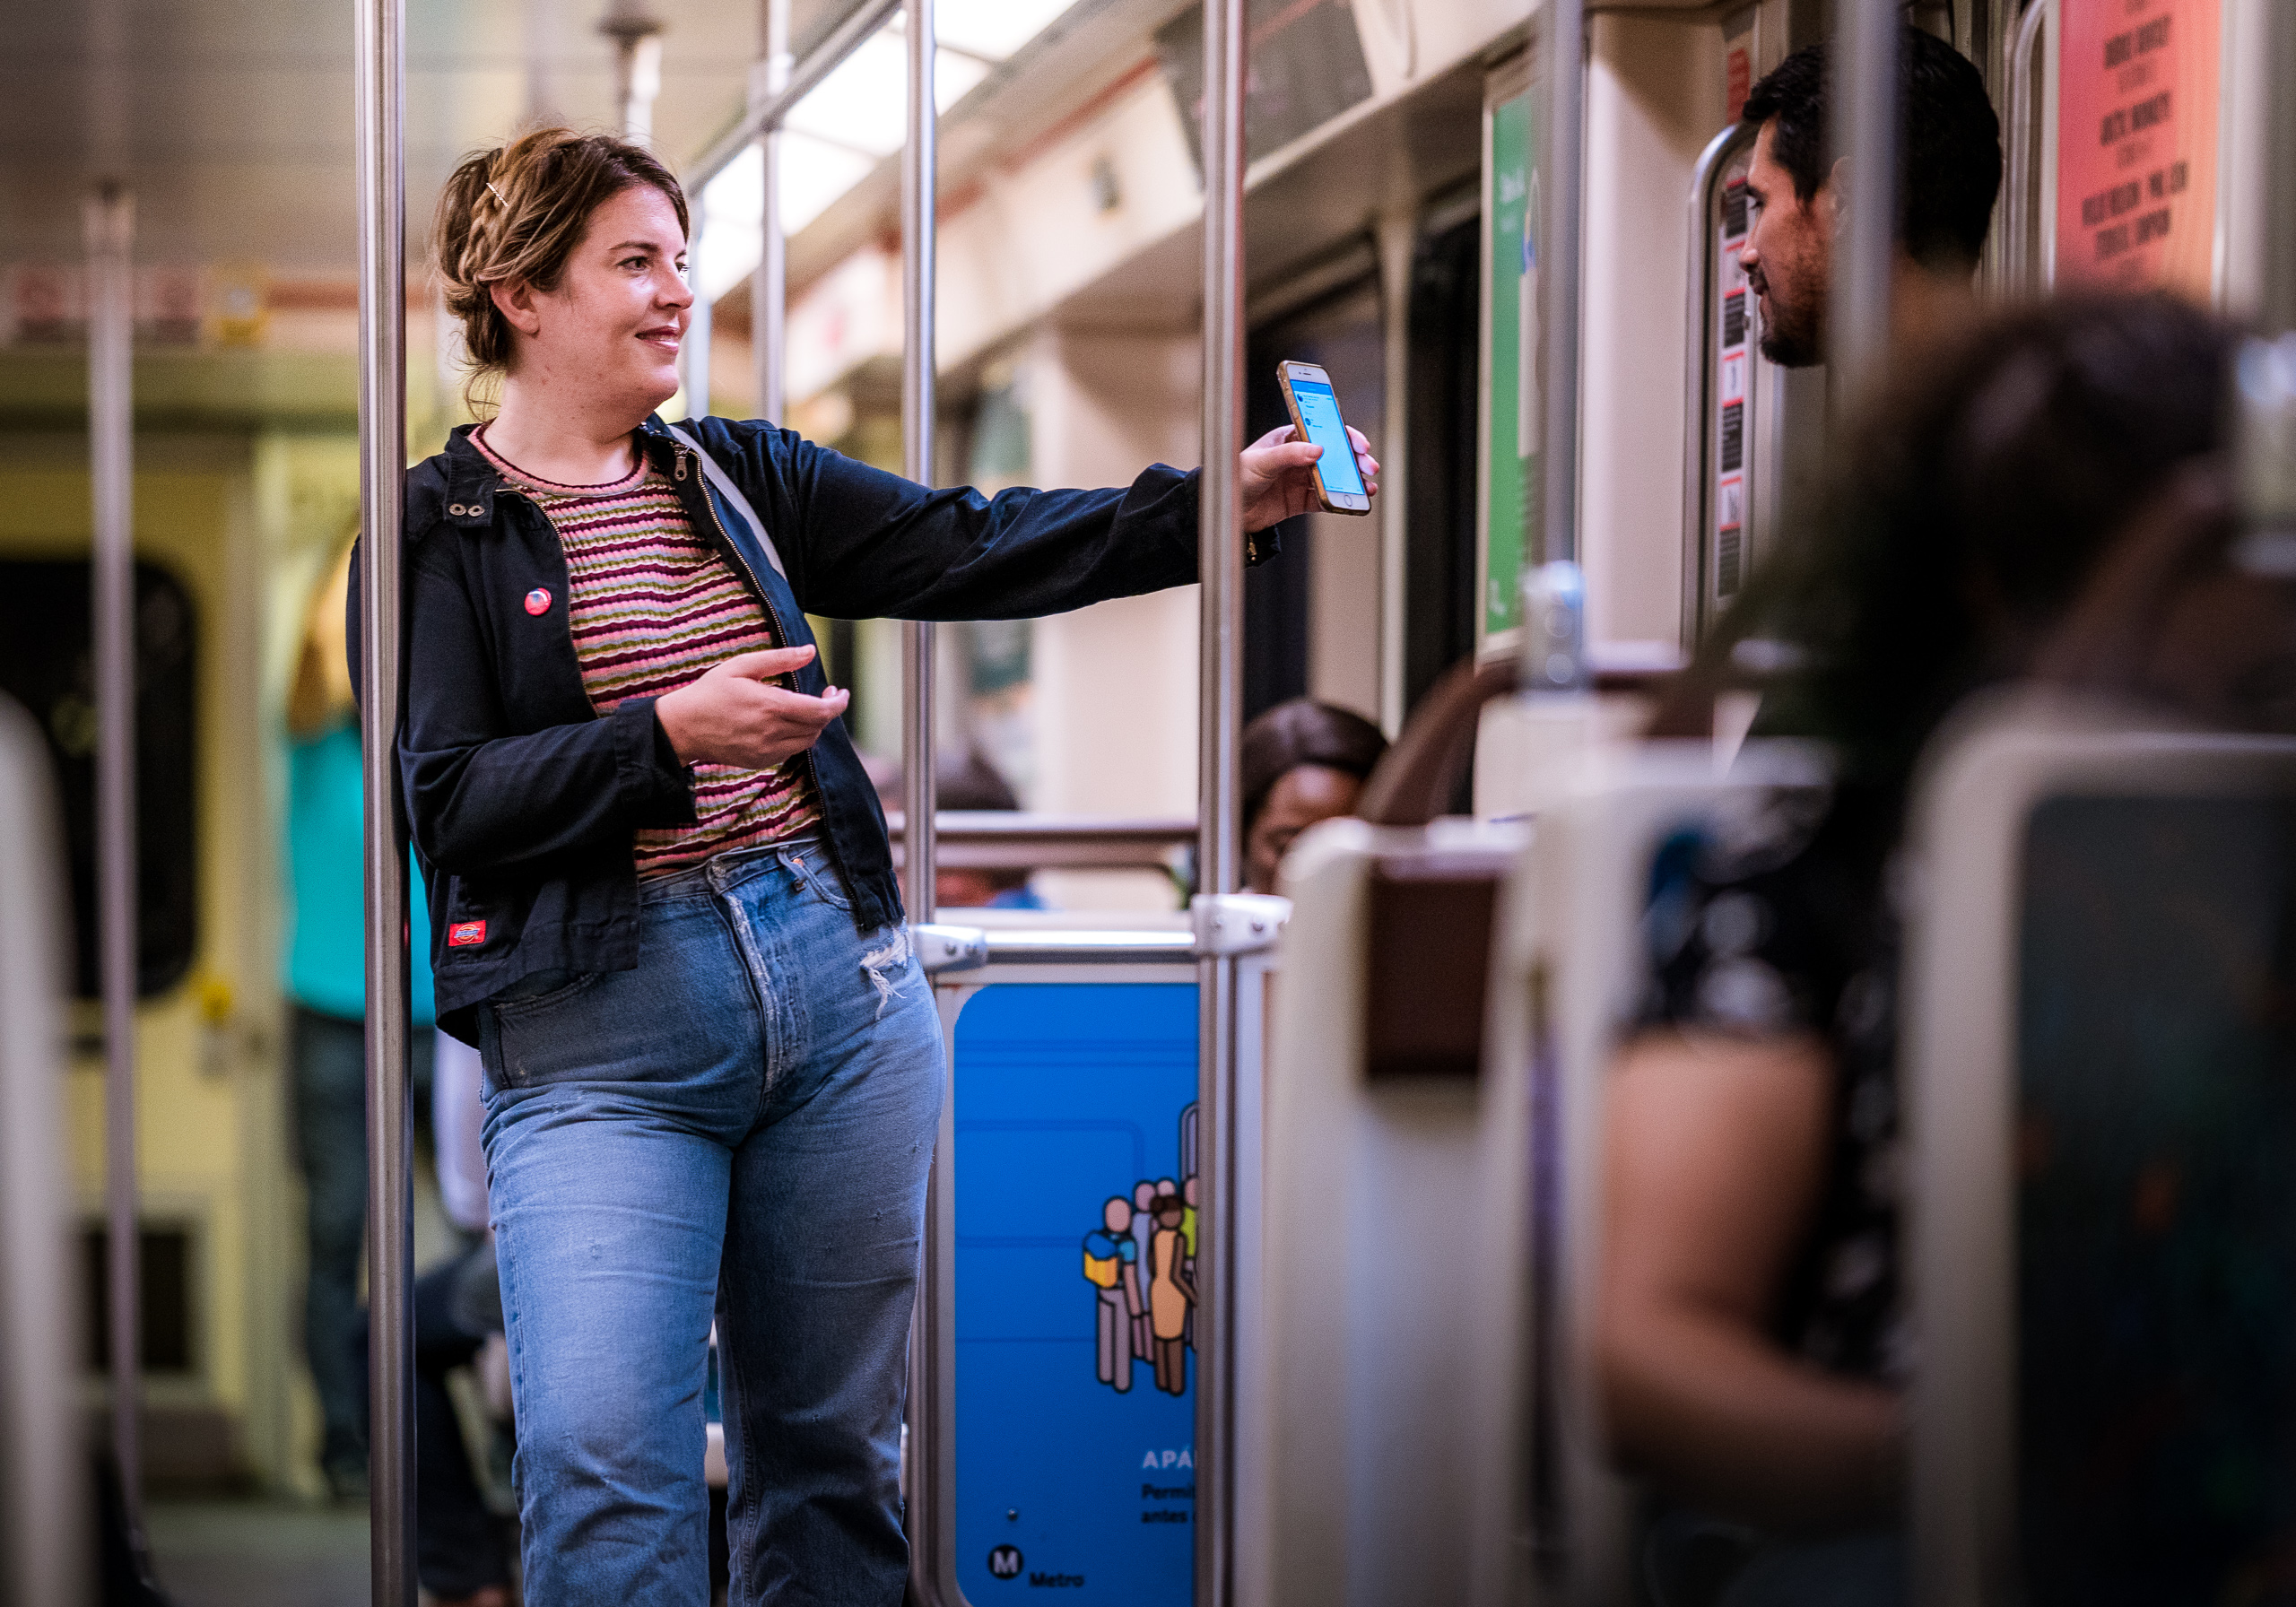 a woman in an LA Metro Red Line Car leans against a pole and extends her arm to show cell phone information to another commuter in the car